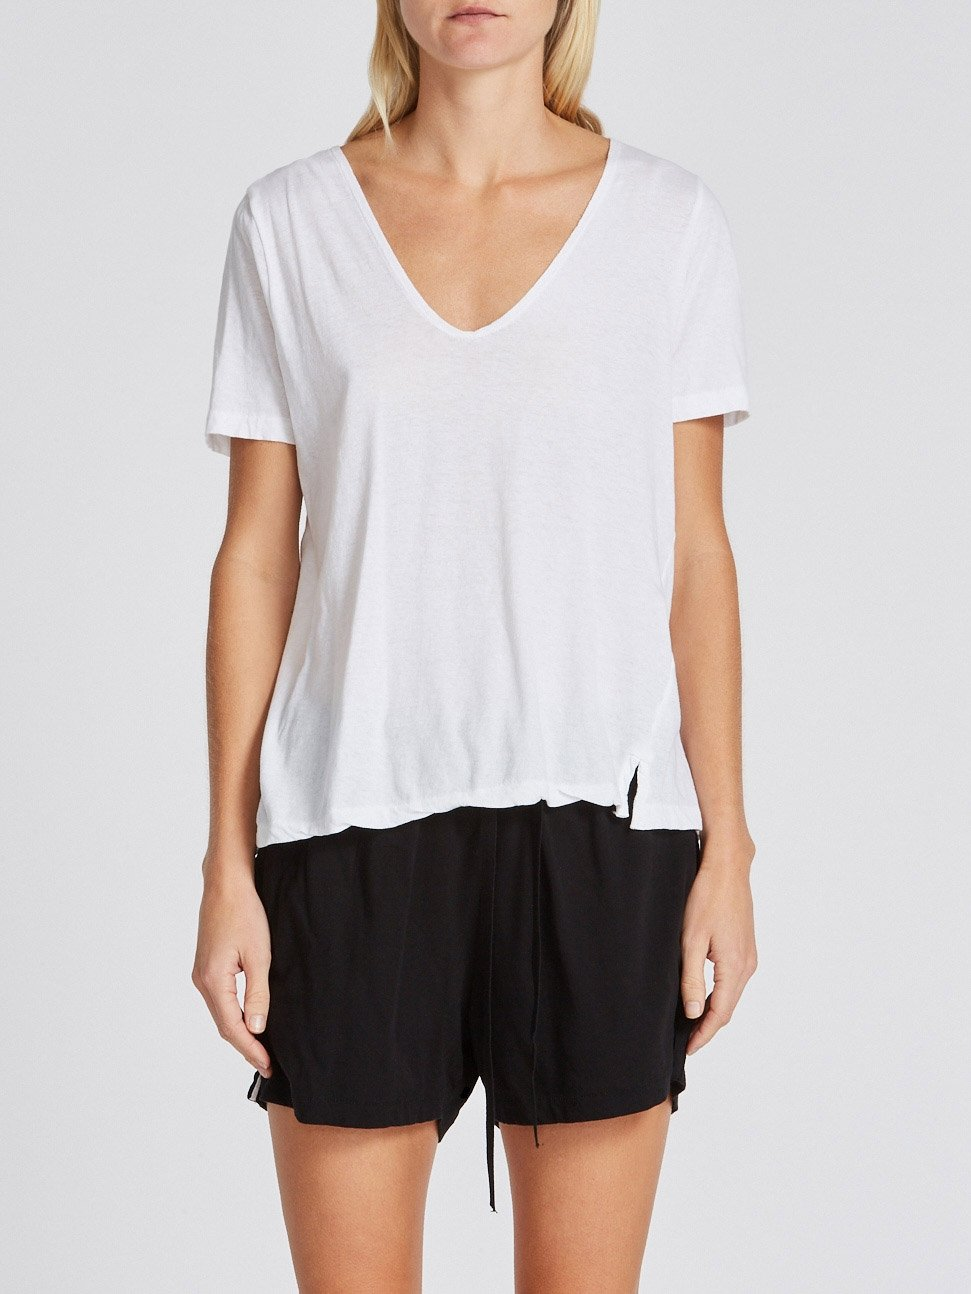 Minimal V Neck T-Shirt - White